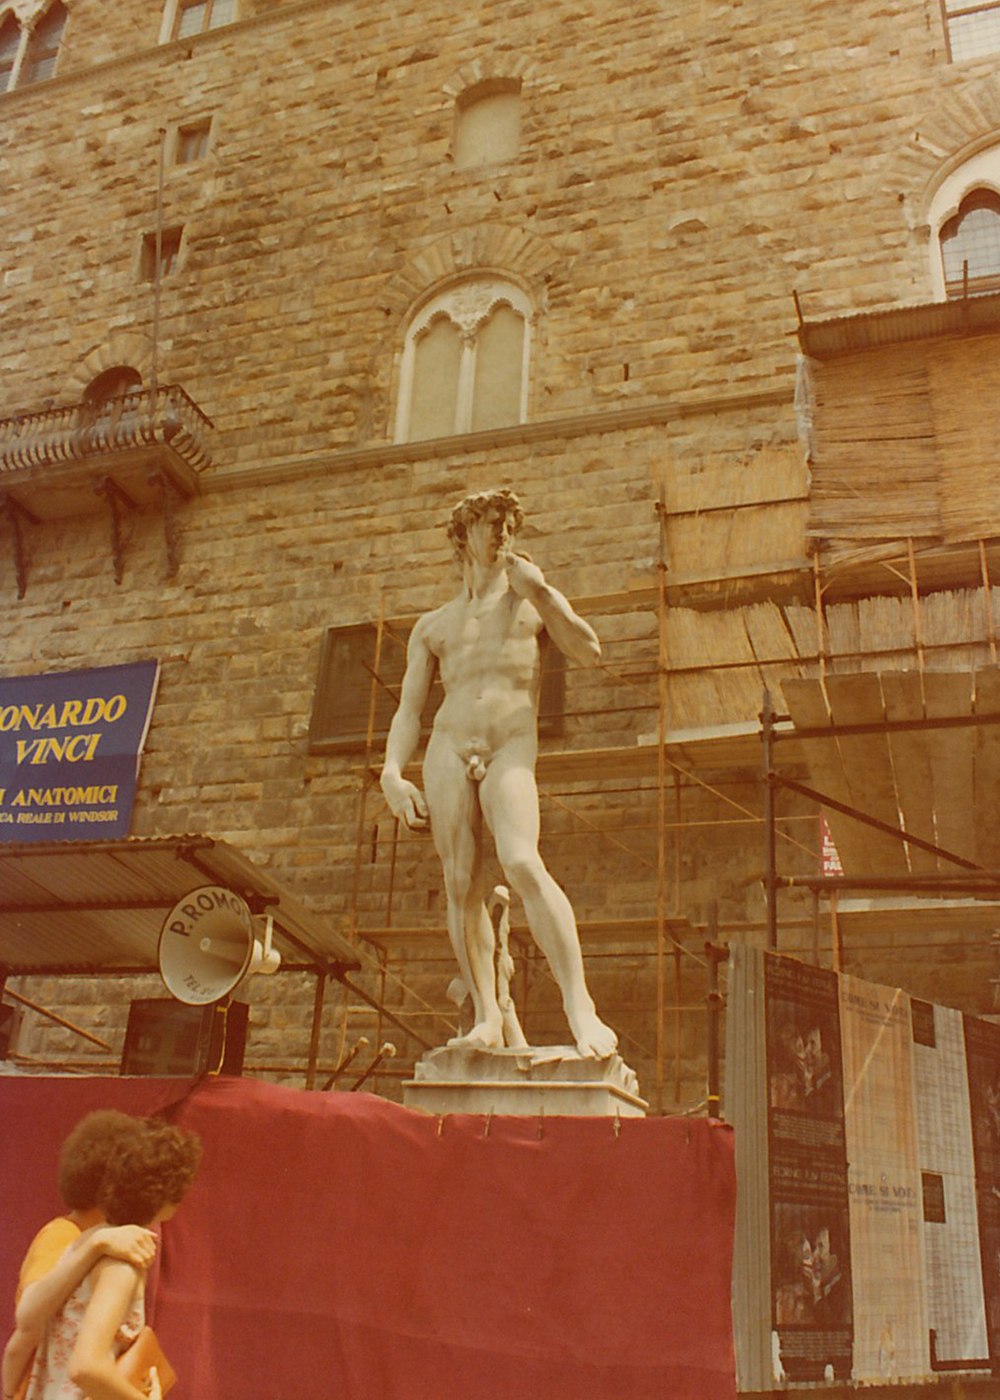 Michelangelo's David in Florence, Italy.